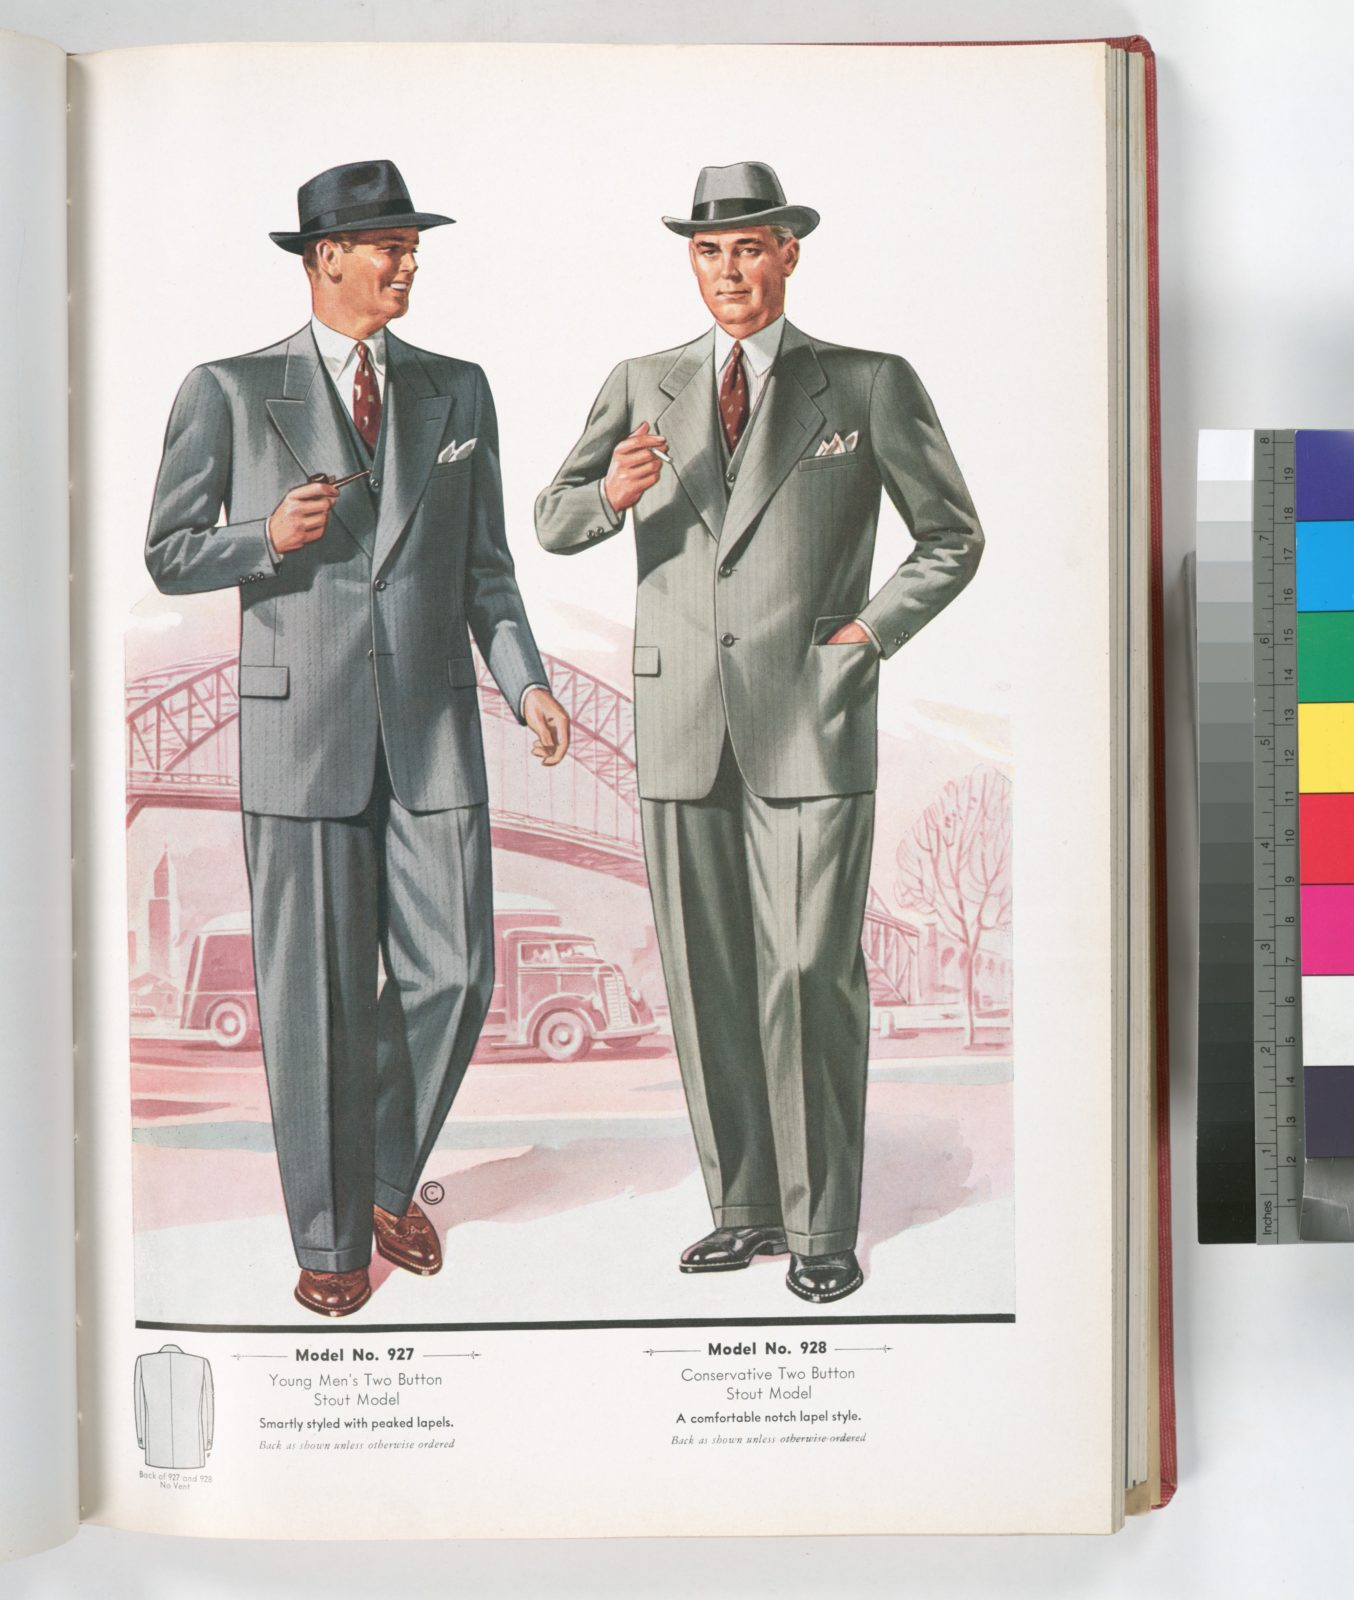 Model No. 927. Young men's two button stout model; Model No. 928. Conservative two button stout model.